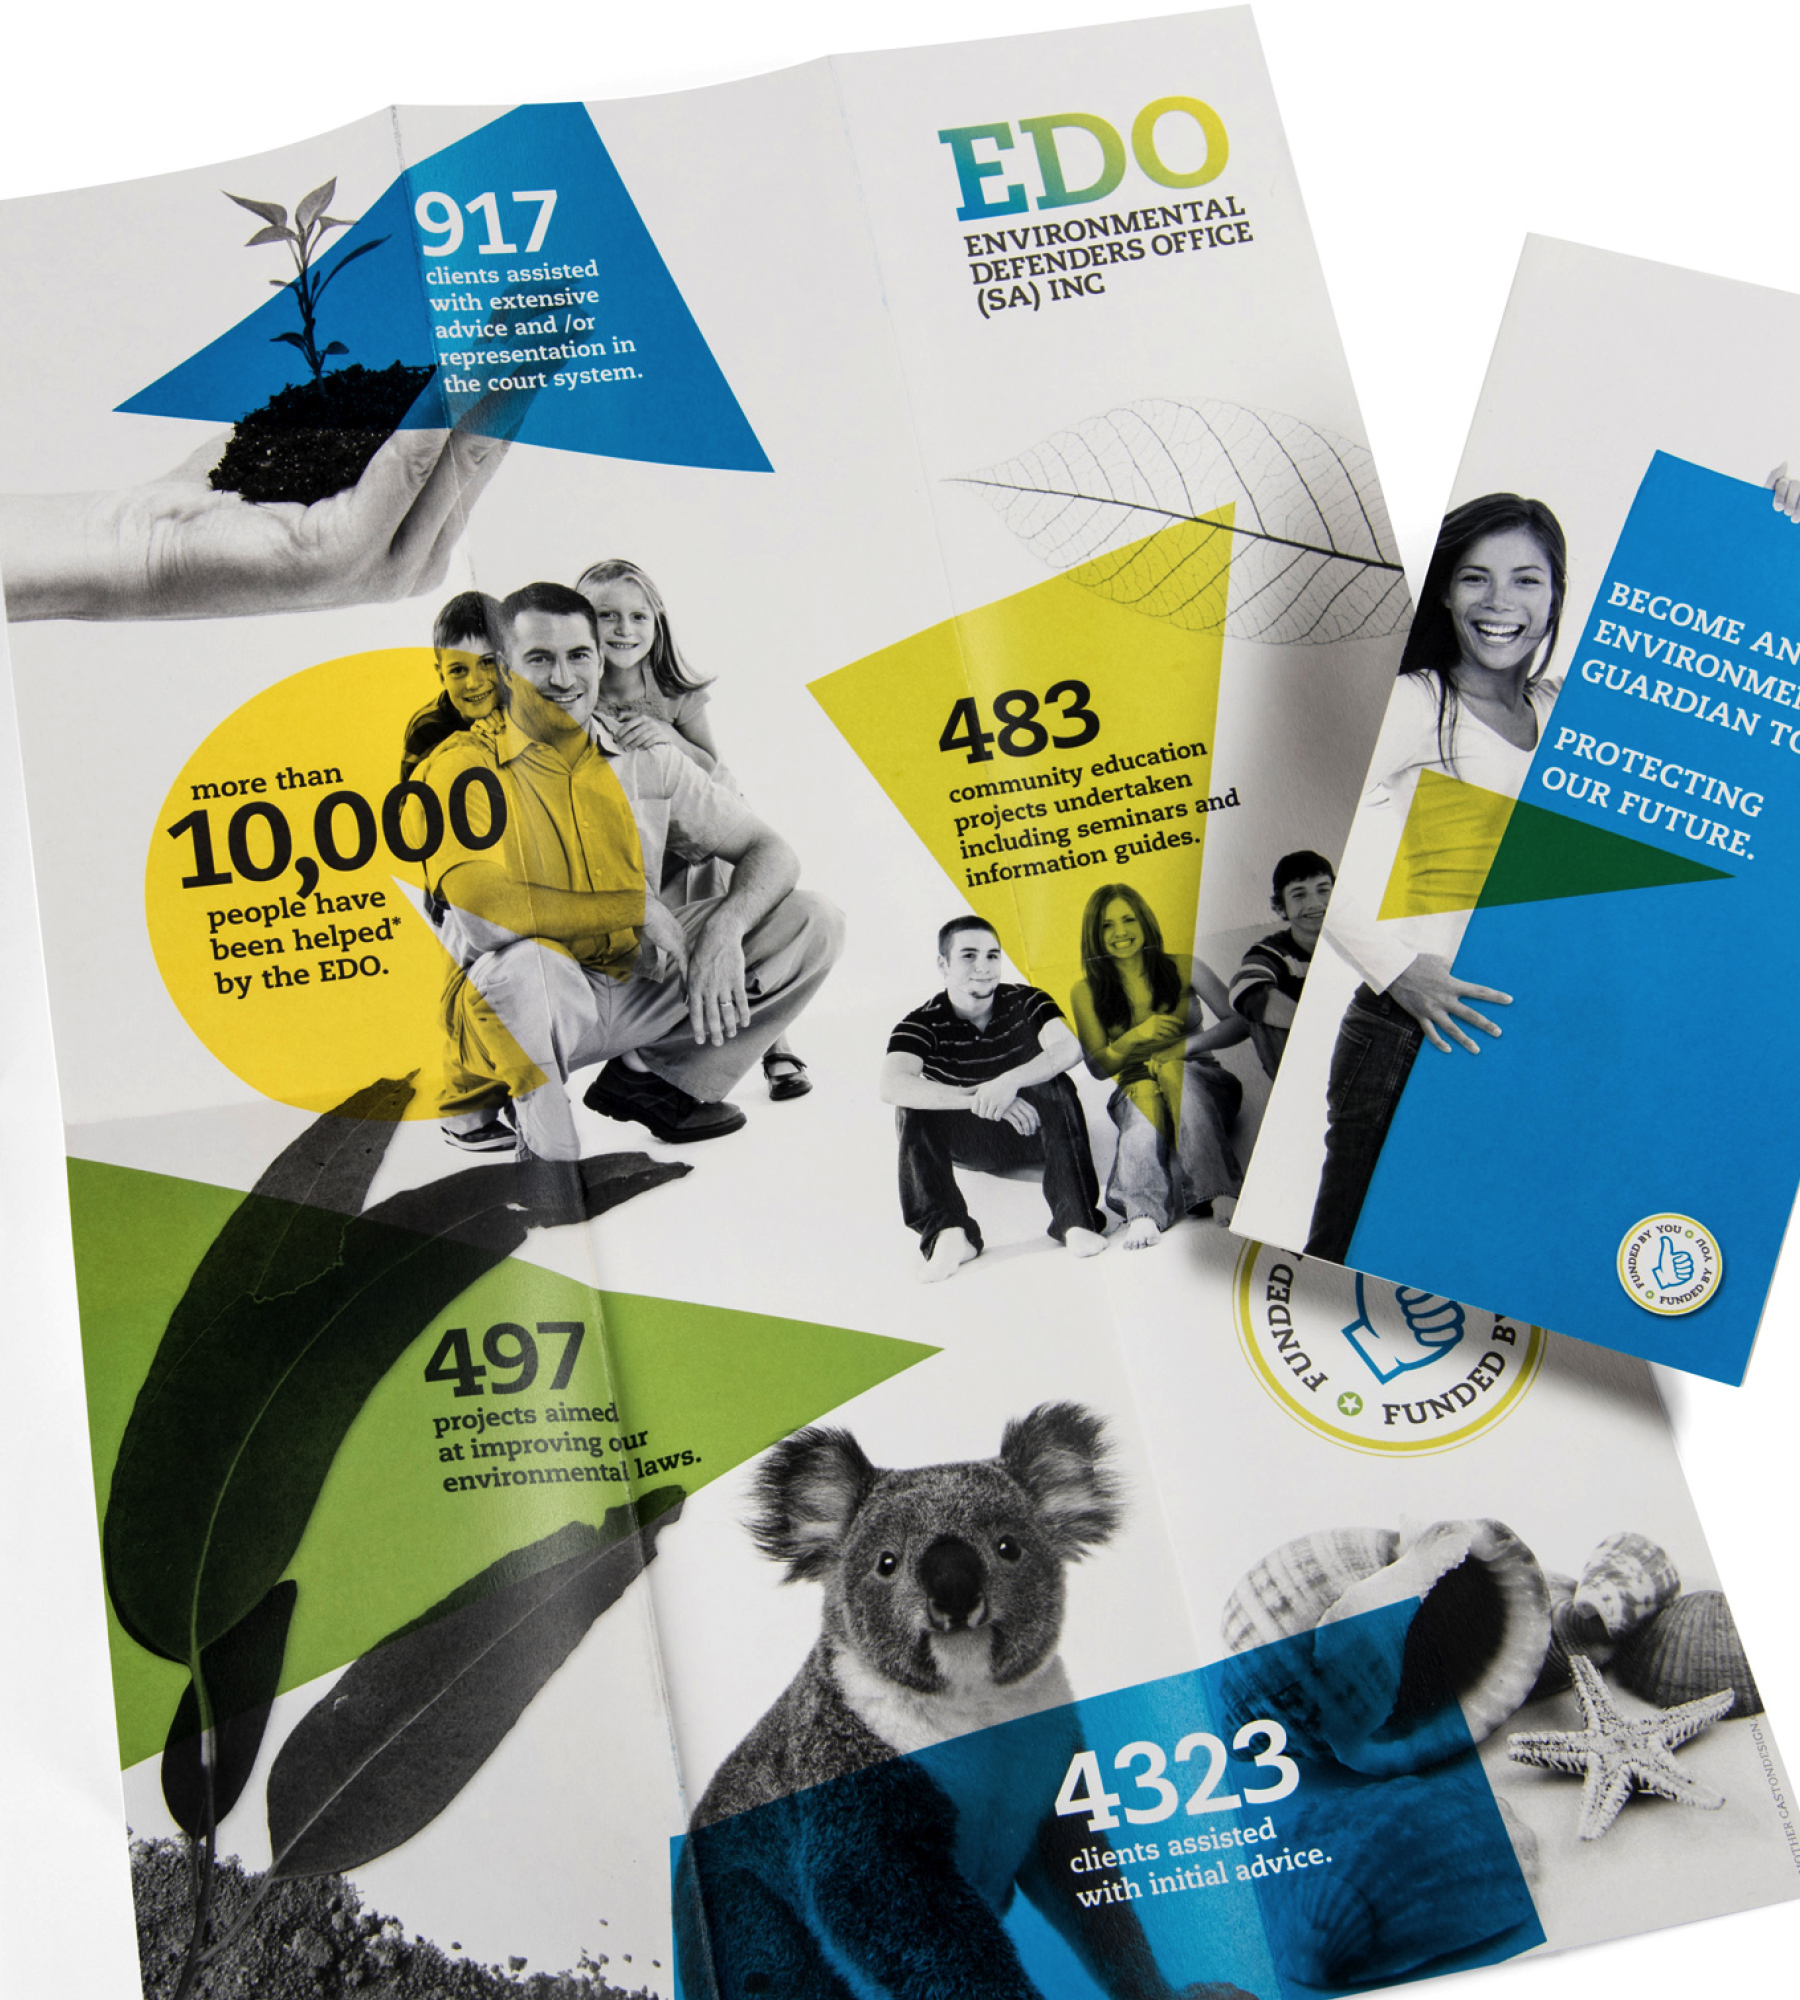 EDO (Environmental Defenders Office SA) - Connecting clients with a cause. Together we developed a series of print and online campaigns that included postcards, posters and electronic direct mail. Overall results saw a 60 percent increase in community awareness, positive perceptions and an increased uptake of services.